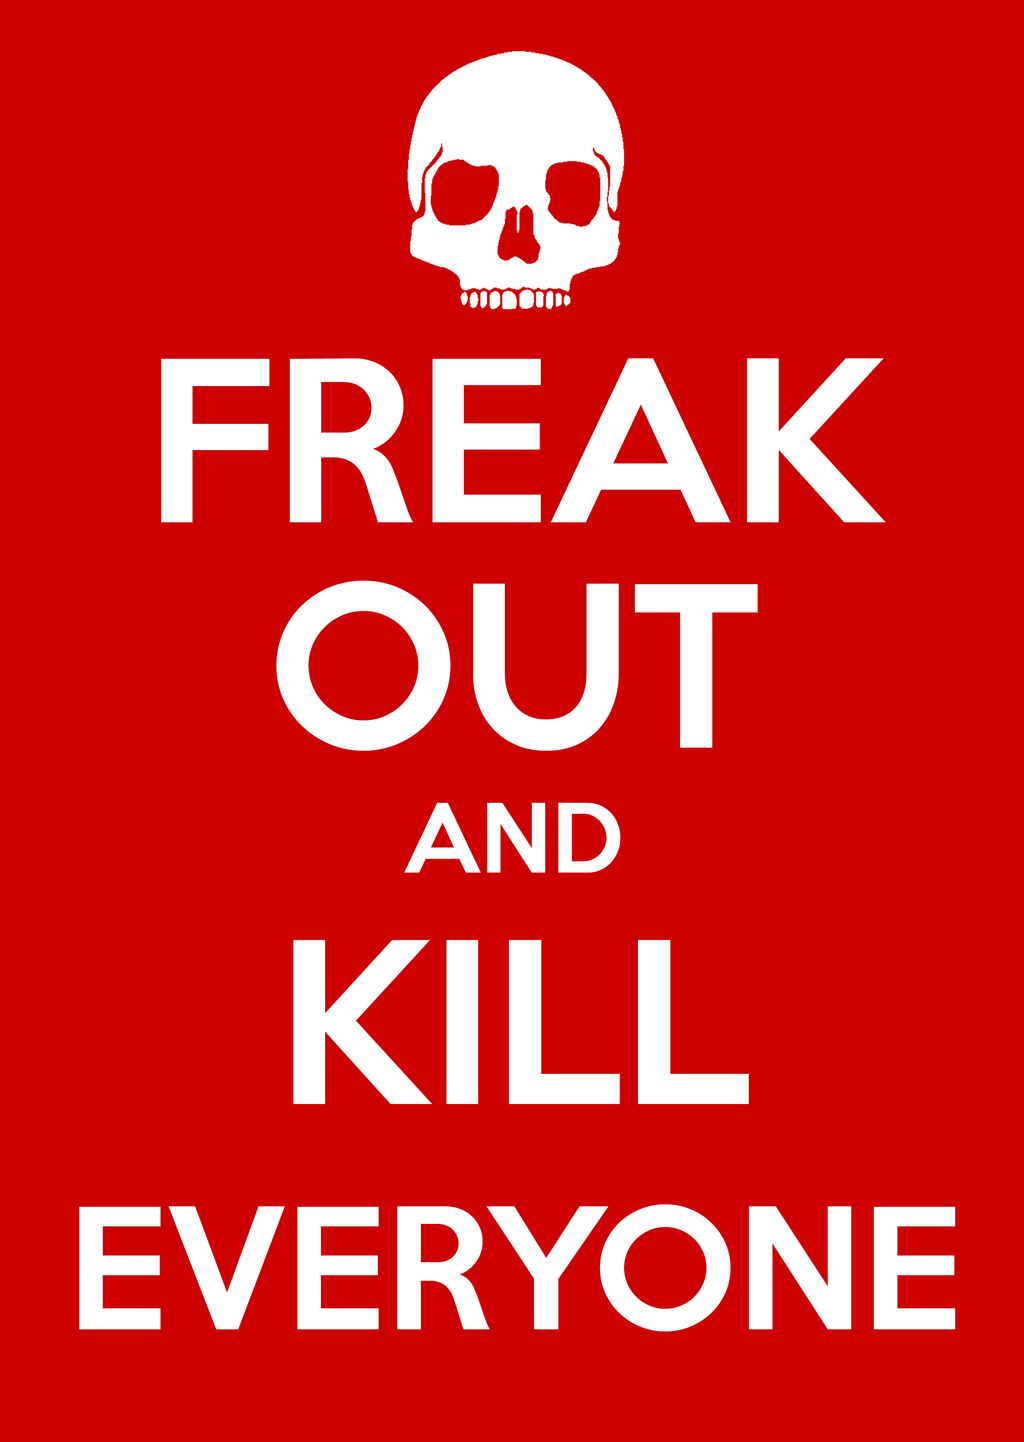 Keep calm and biohazard on keep calm and carry on image generator -  Observe Keep Calm And Carry On Or You Could Try These Options Il_fullxfull 204424191 Stay_calm_and_carry_on_by_doomseer D5ct2fq